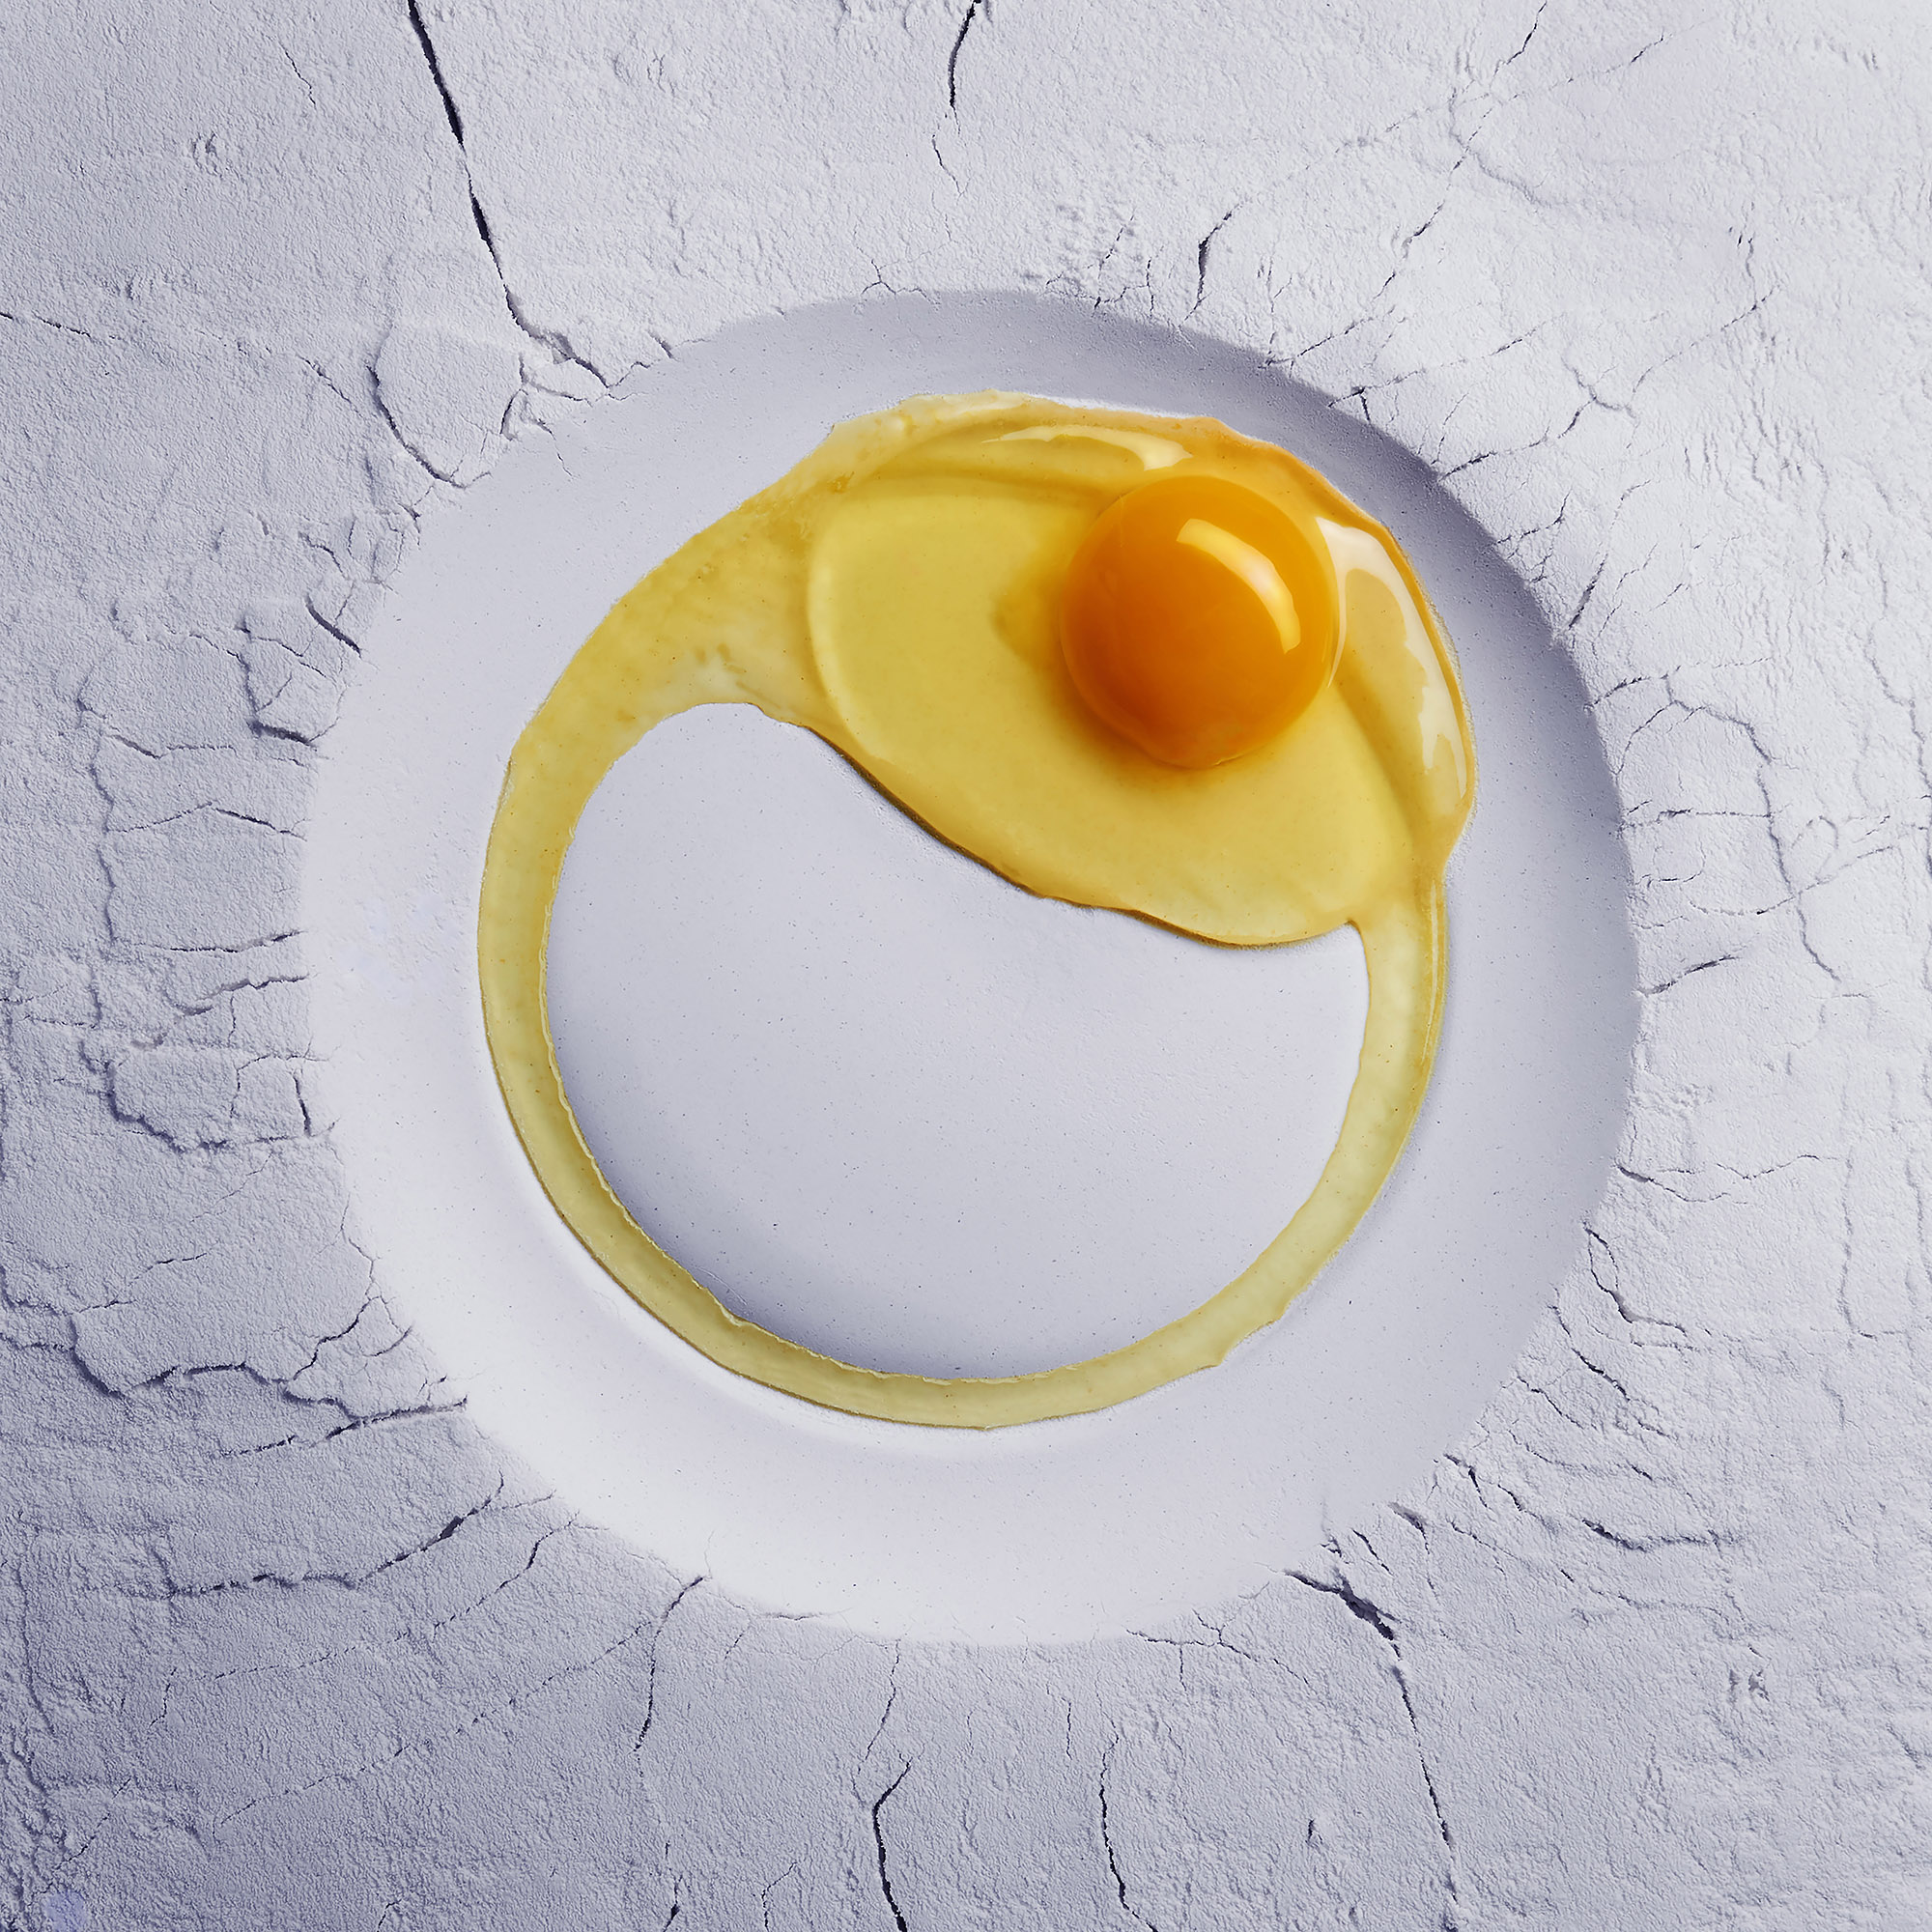 Ian Knaggs Commercial Still Life Photographer - Flour and Egg Plate